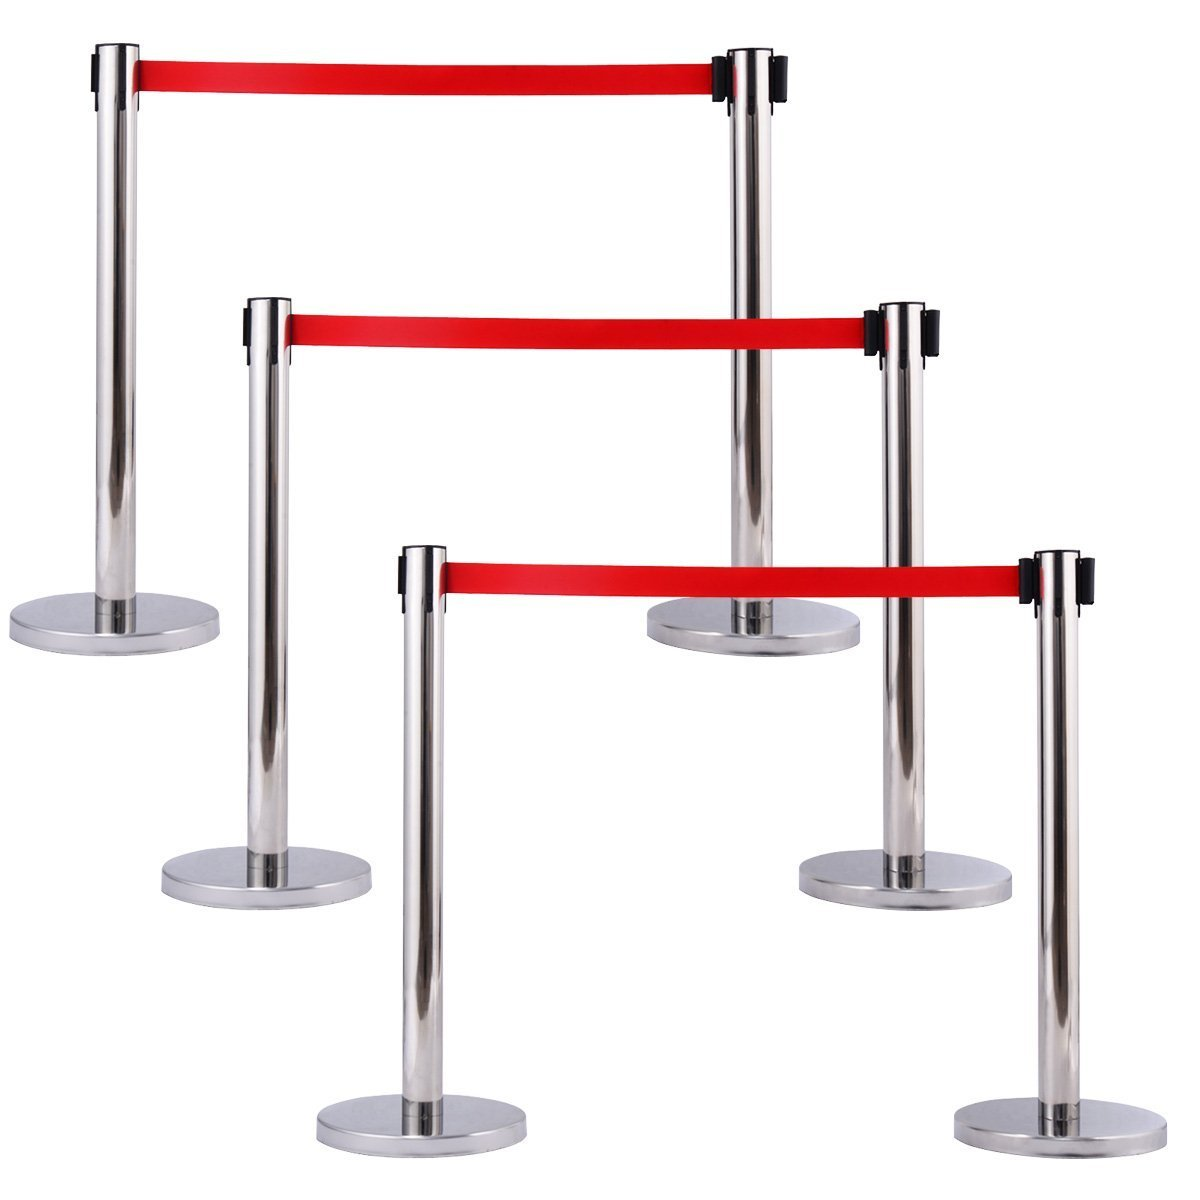 Comie Stanchion Set w/ Red Retractable Belt Posts Queue Pole Crowd Control Barrier (6)